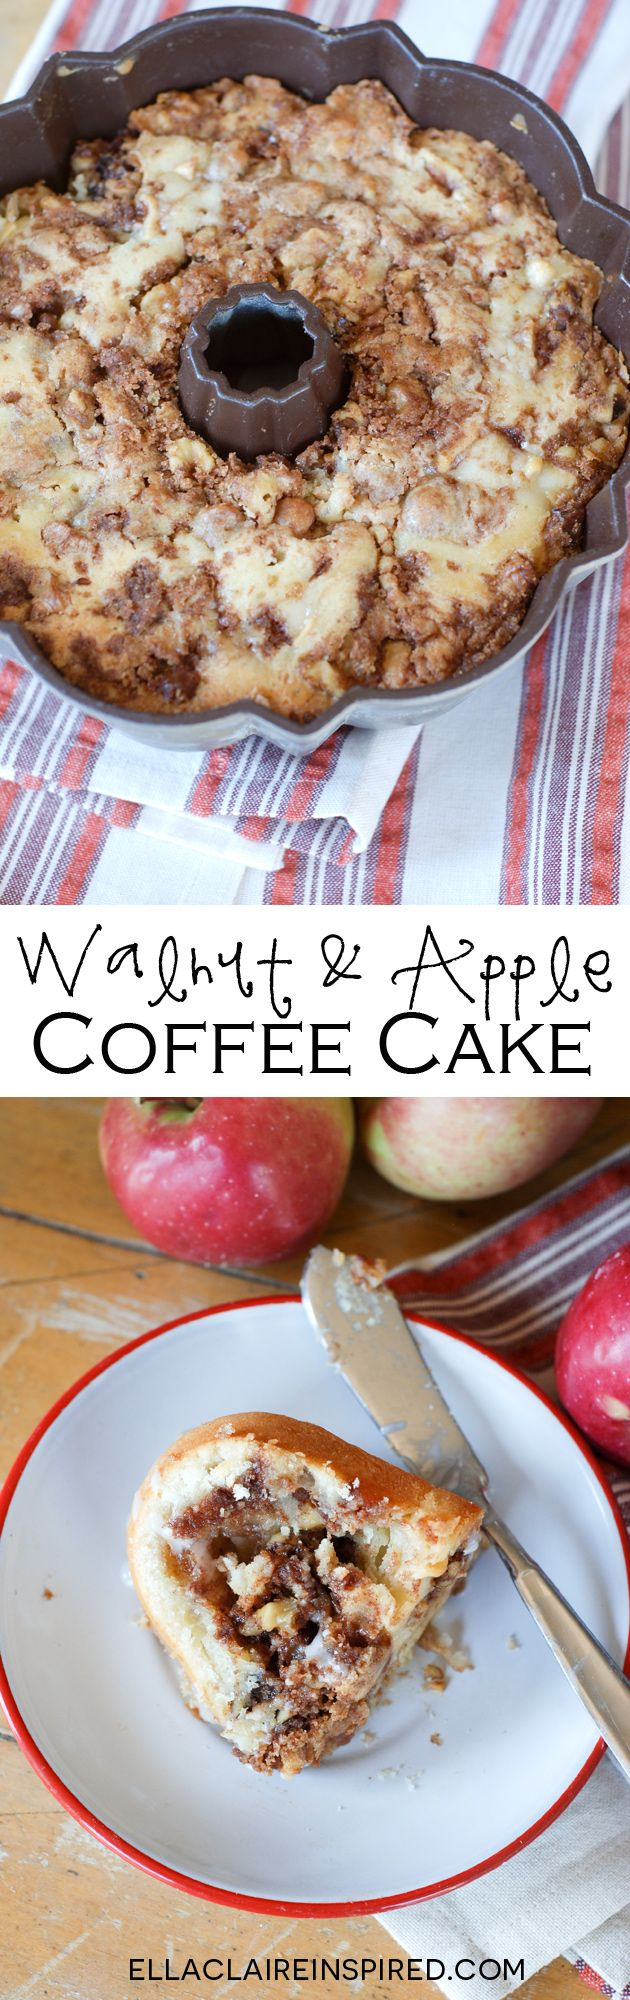 Walnut and Apple Coffee Cake~ A delicious Fall variation of this classic breakfast cake that is sure to become a family favorite!